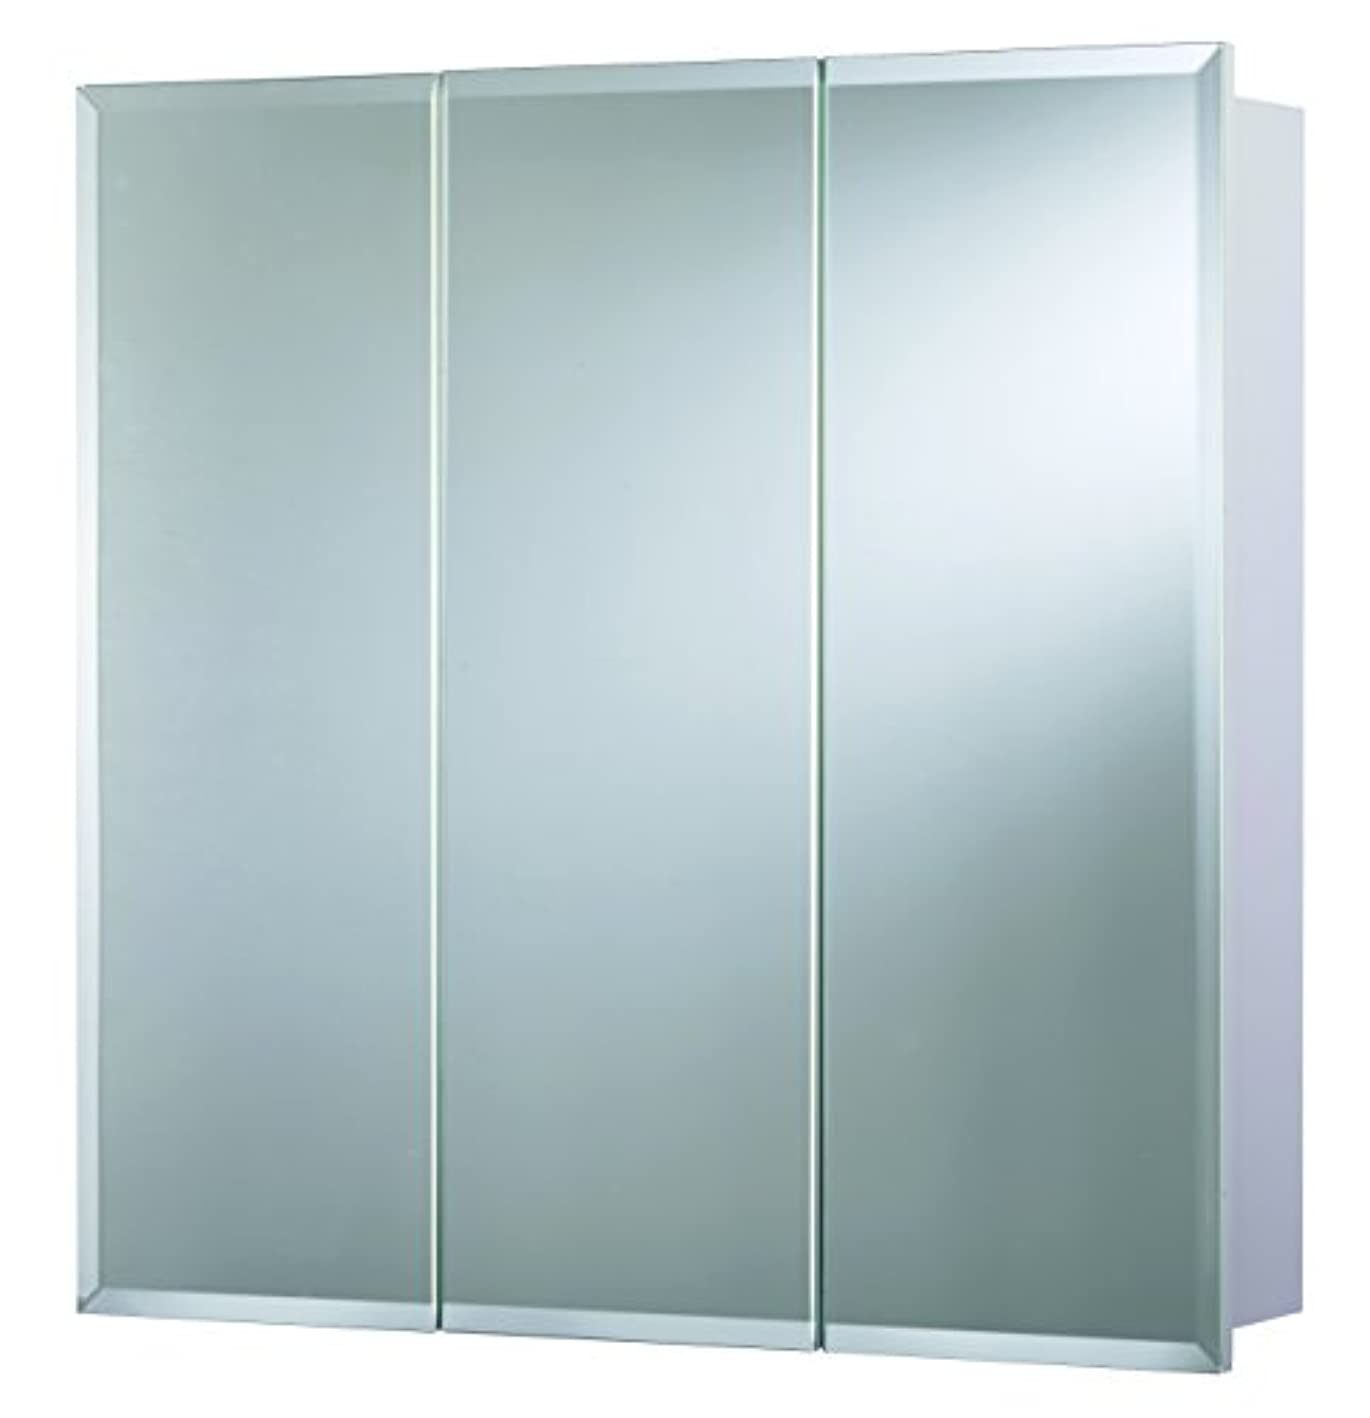 Croydex Heacham 30-Inch x 30-Inch Triple Door Tri-View Cabinet with Hang 'N' Lock Fitting System